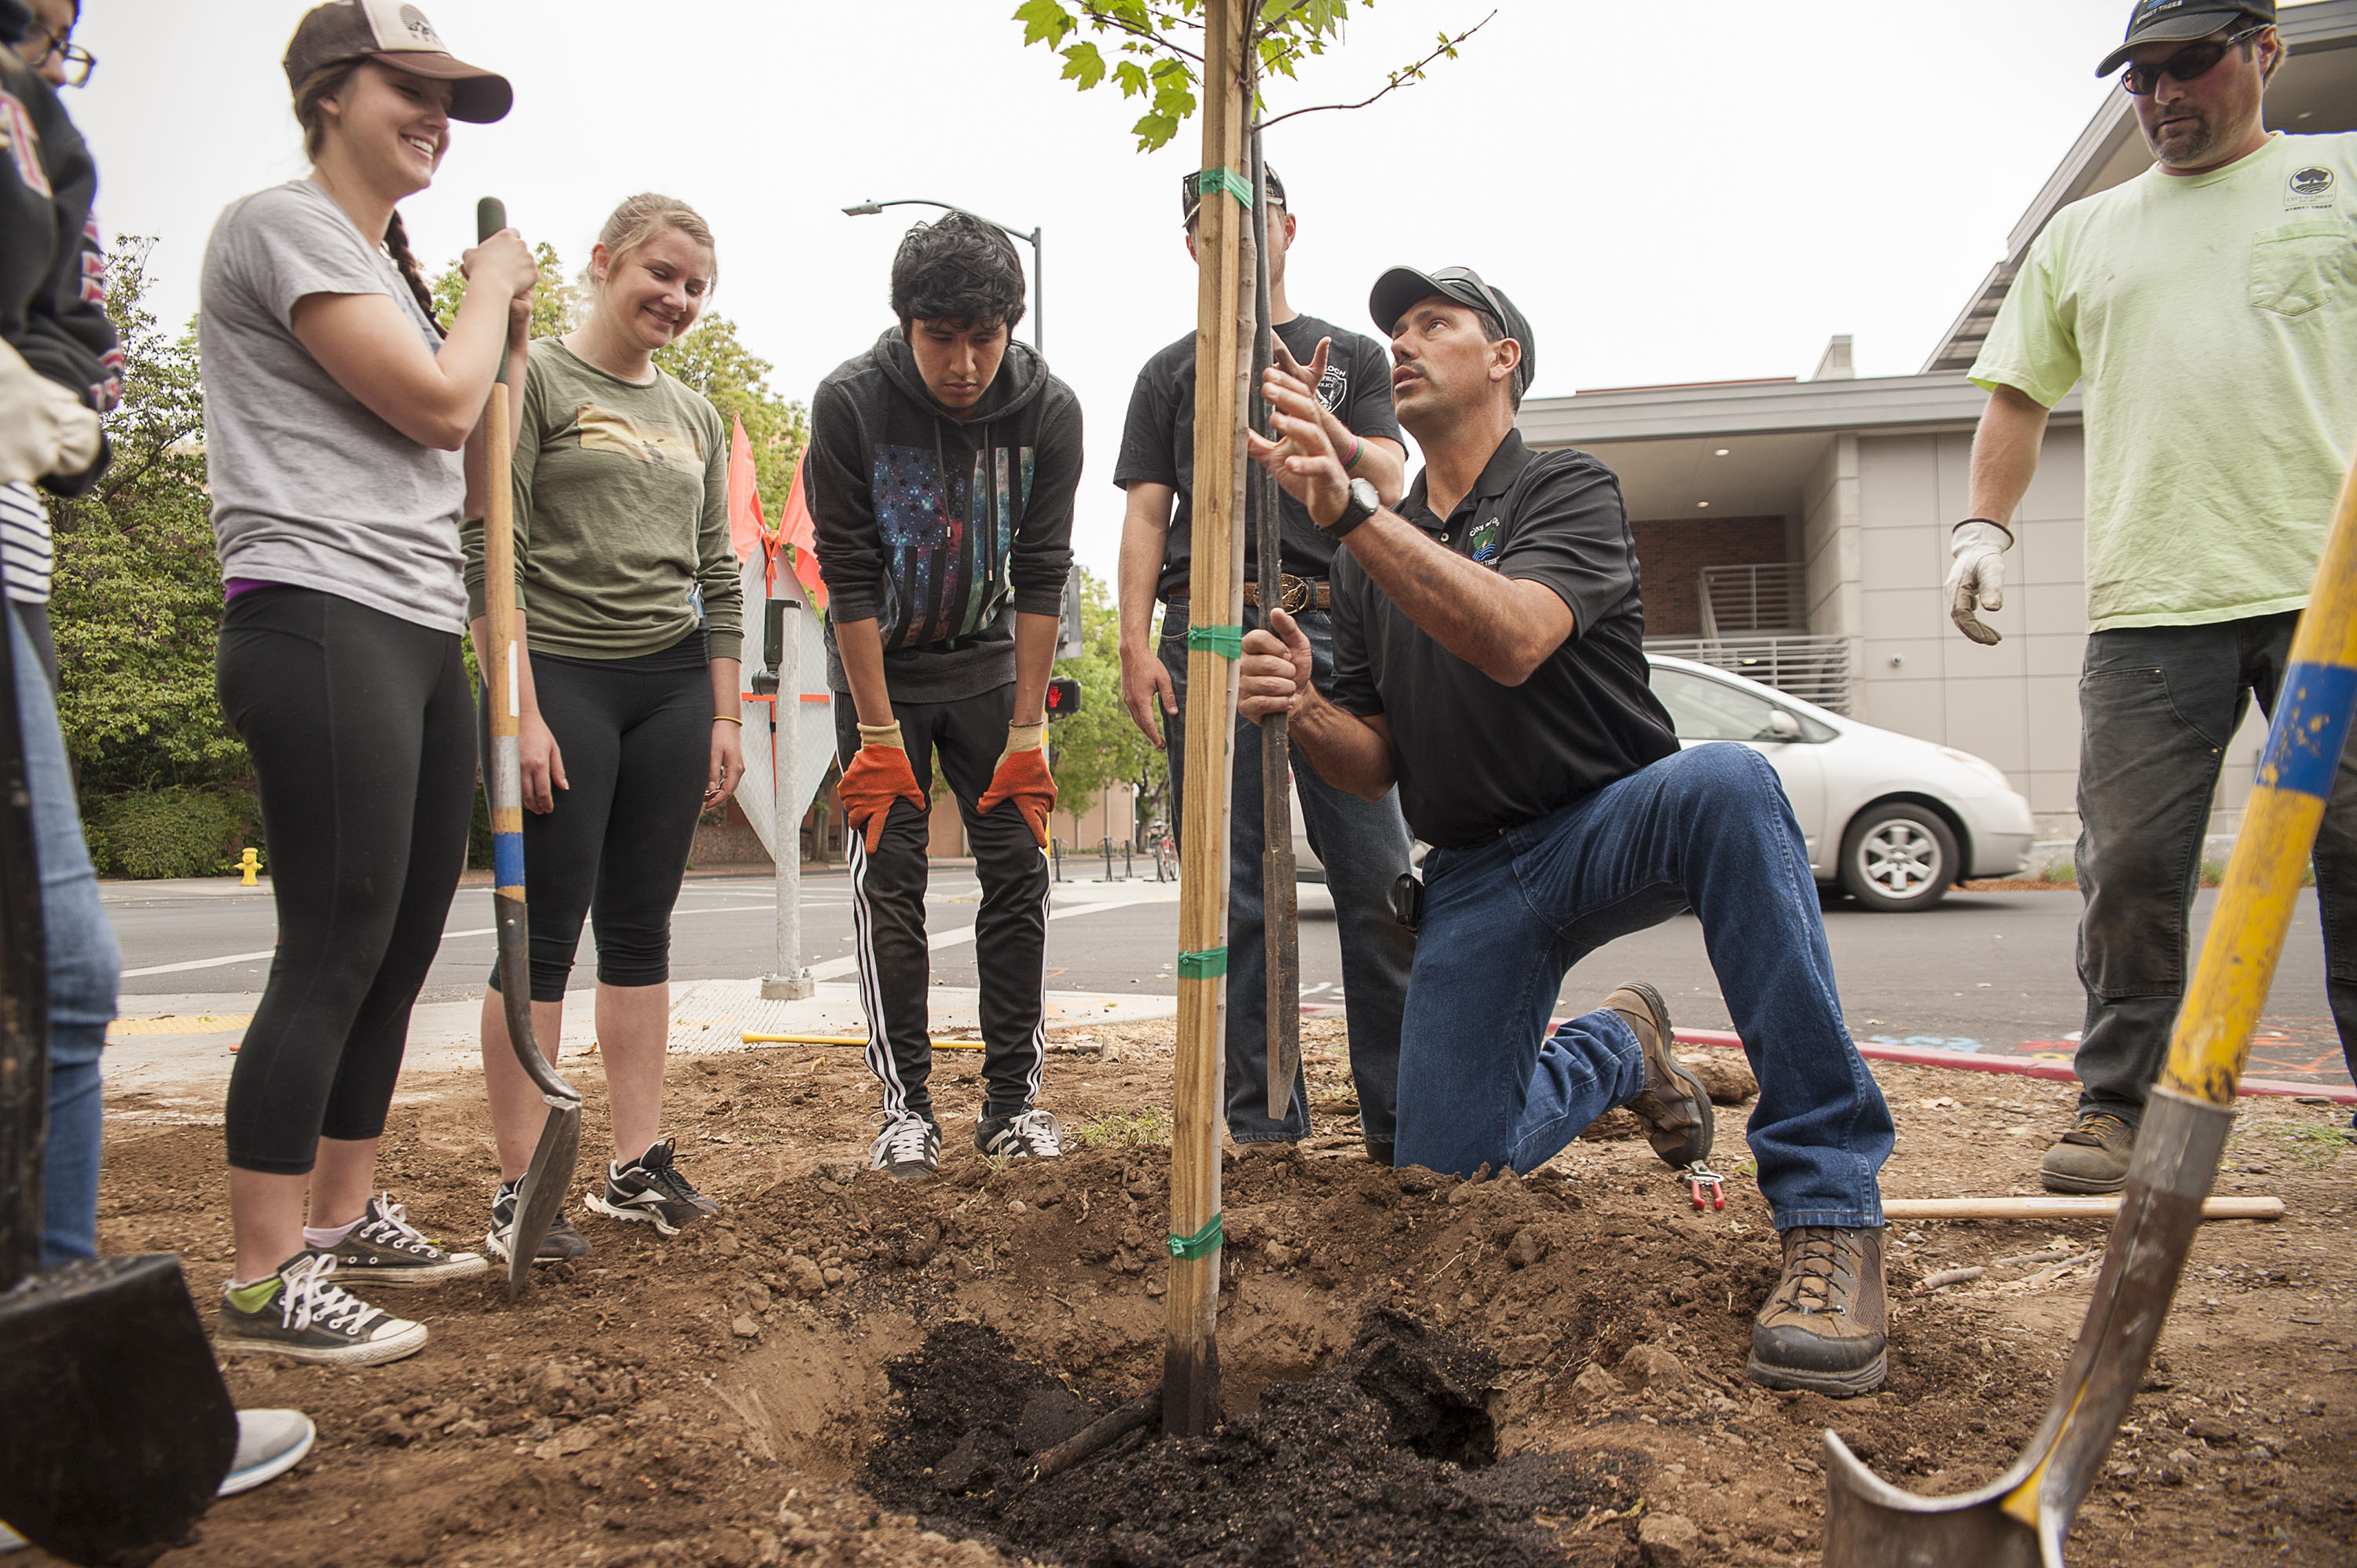 Students at Cal State Channel Islands planting trees